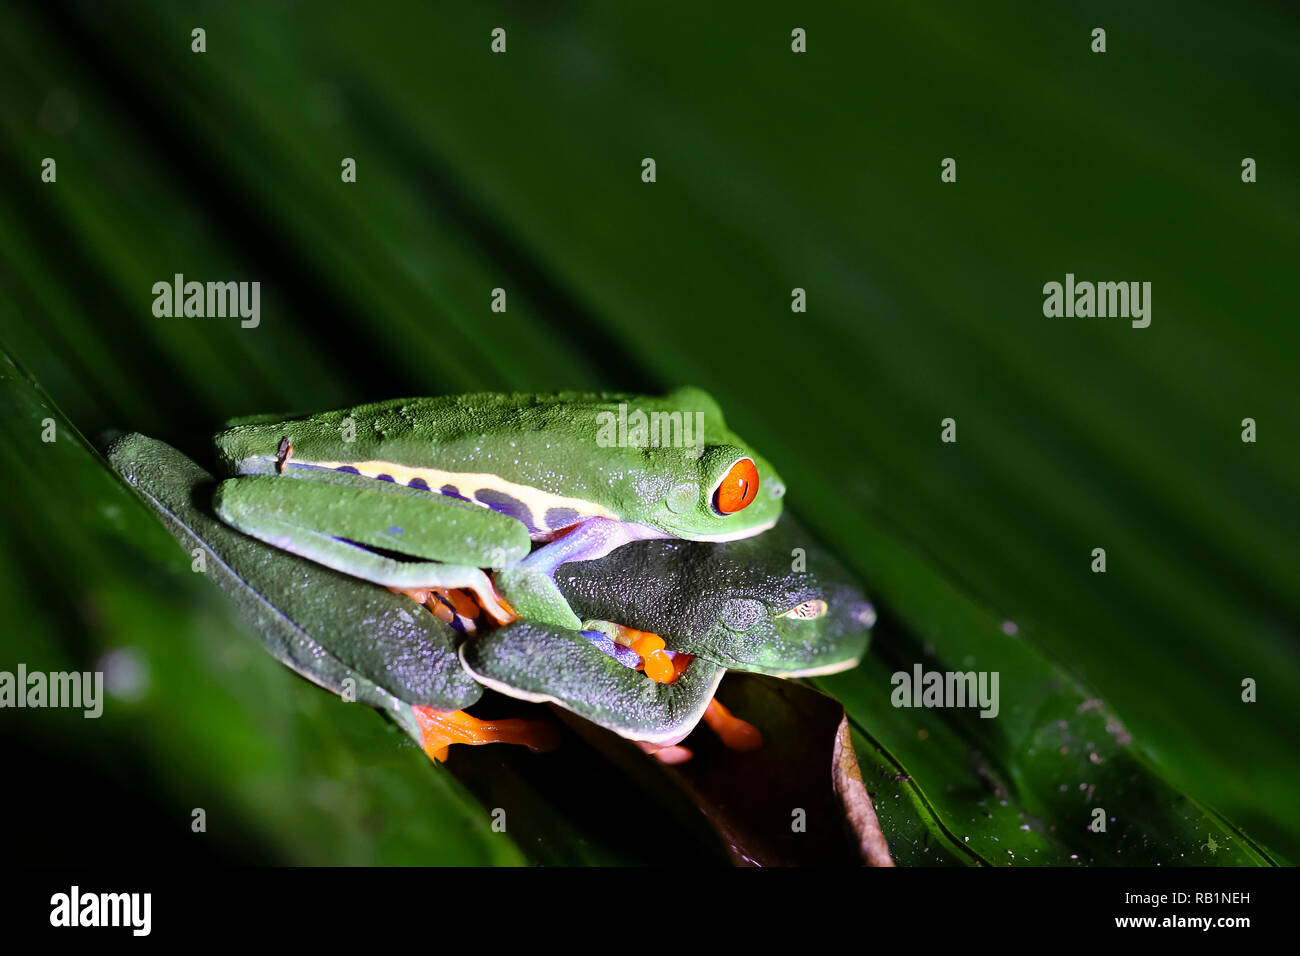 Red-eyed leaf frogs mating in Costa Rican rainforest Stock Photo